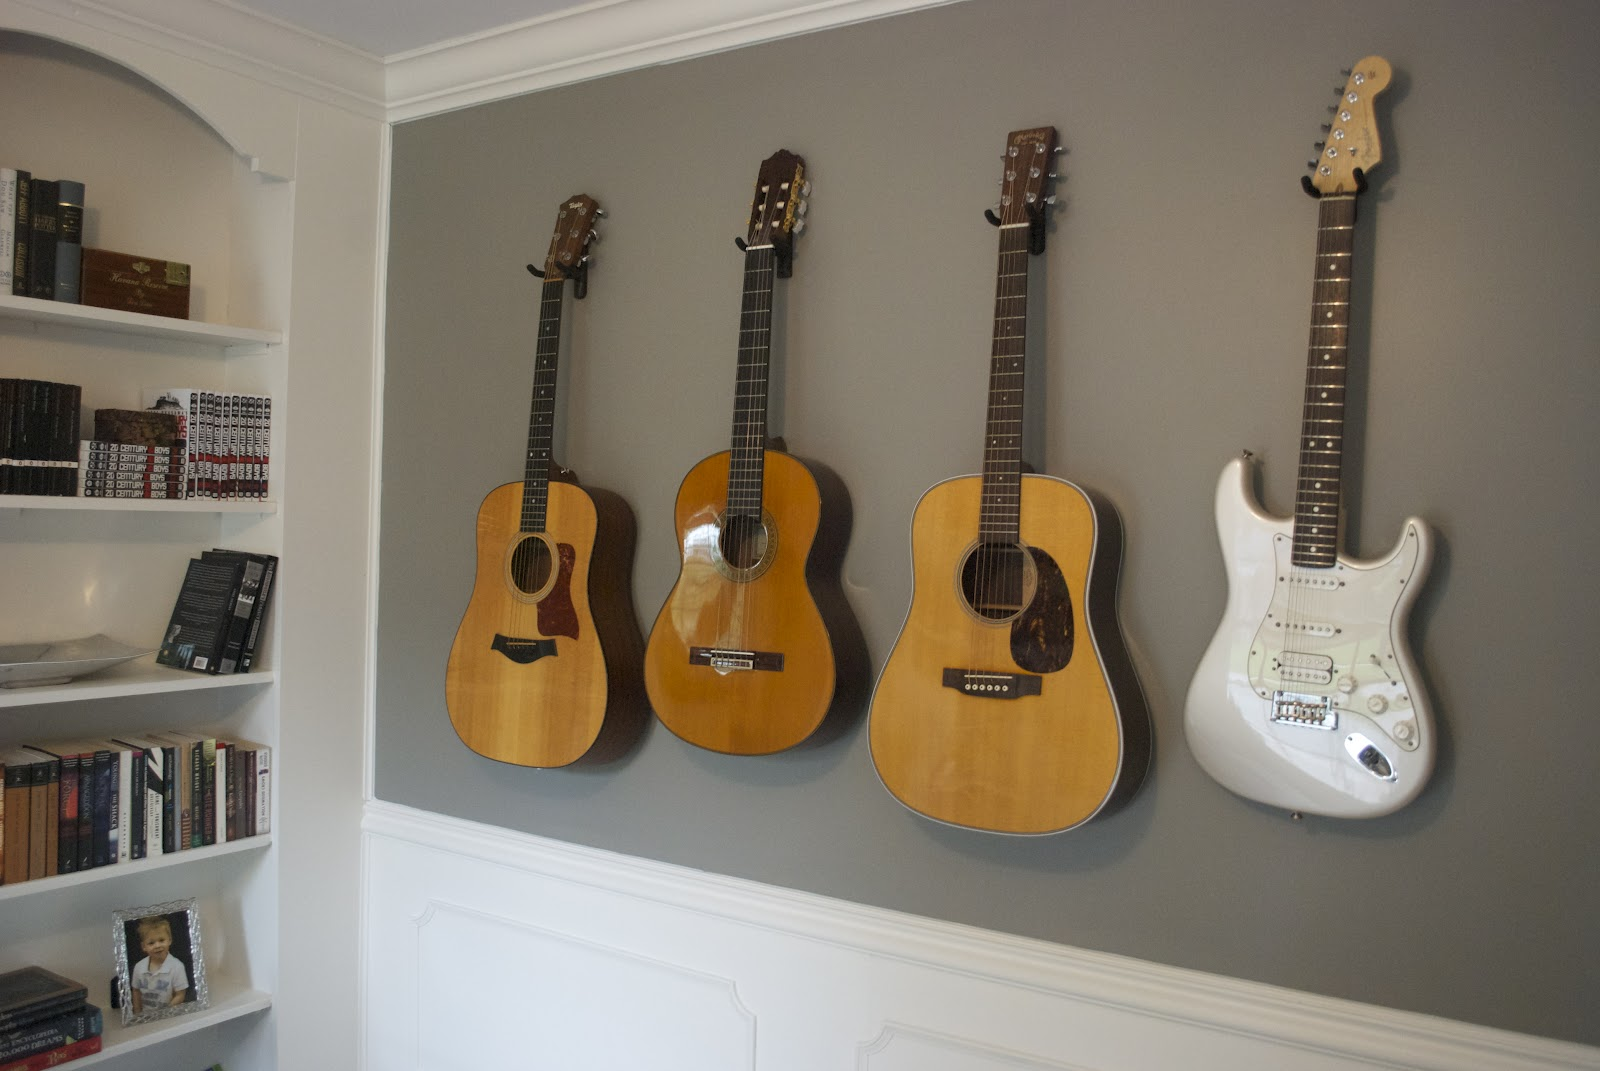 DIY Wall Mount Guitar Holders Steemit